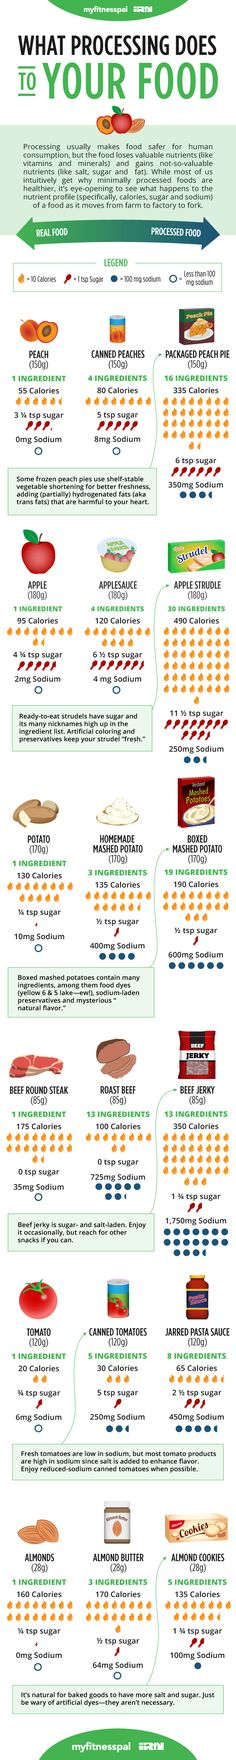 What Processing Does to Your Food